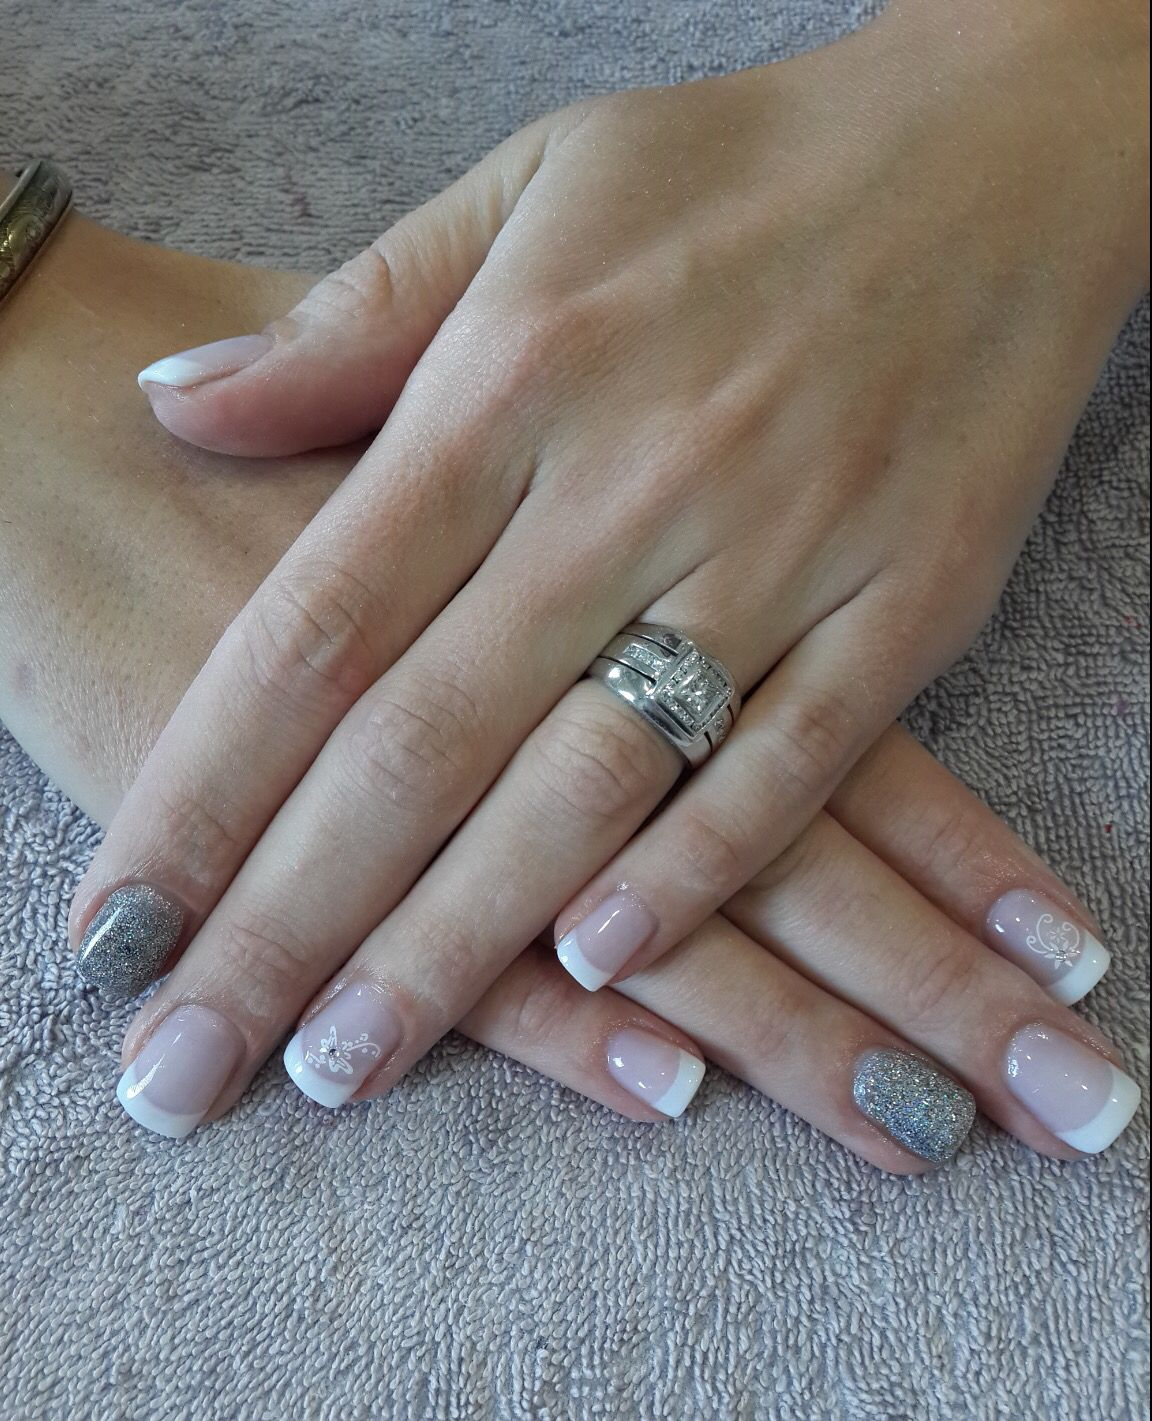 Acrylic French overlay on natural nails | Serenité health & beauty ...